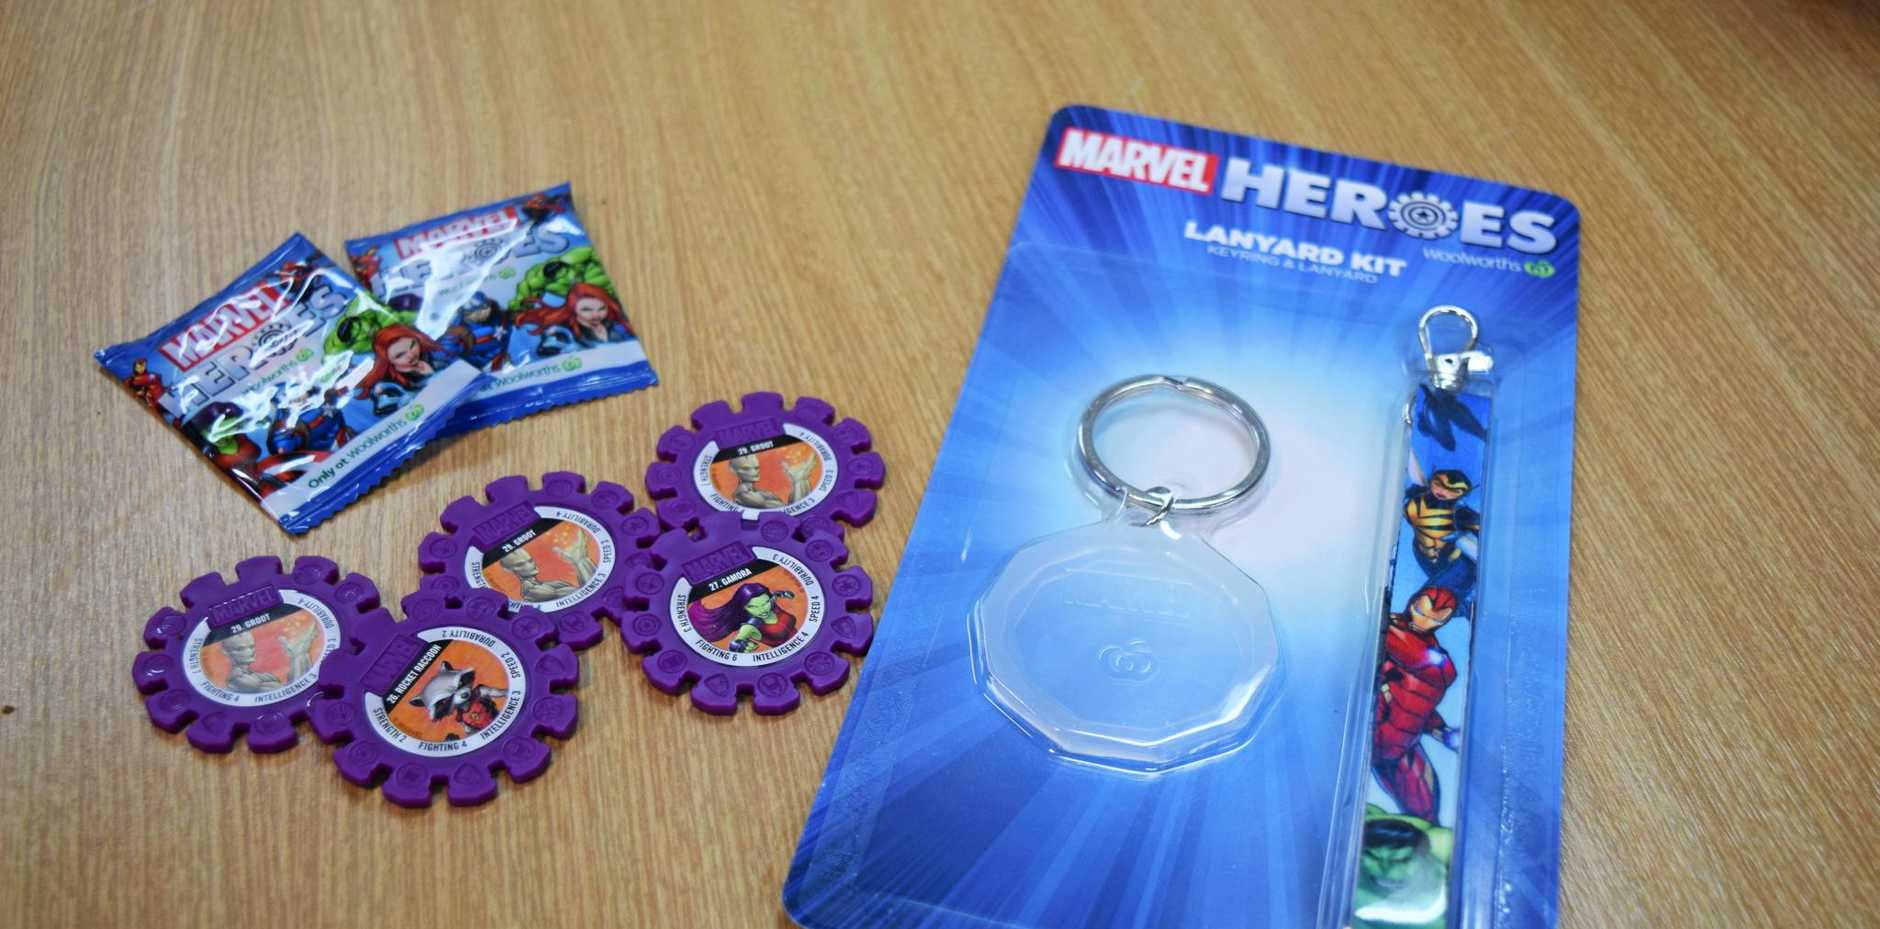 Woolworths Marvel Heroes Super Discs are the latest craze in collectables.